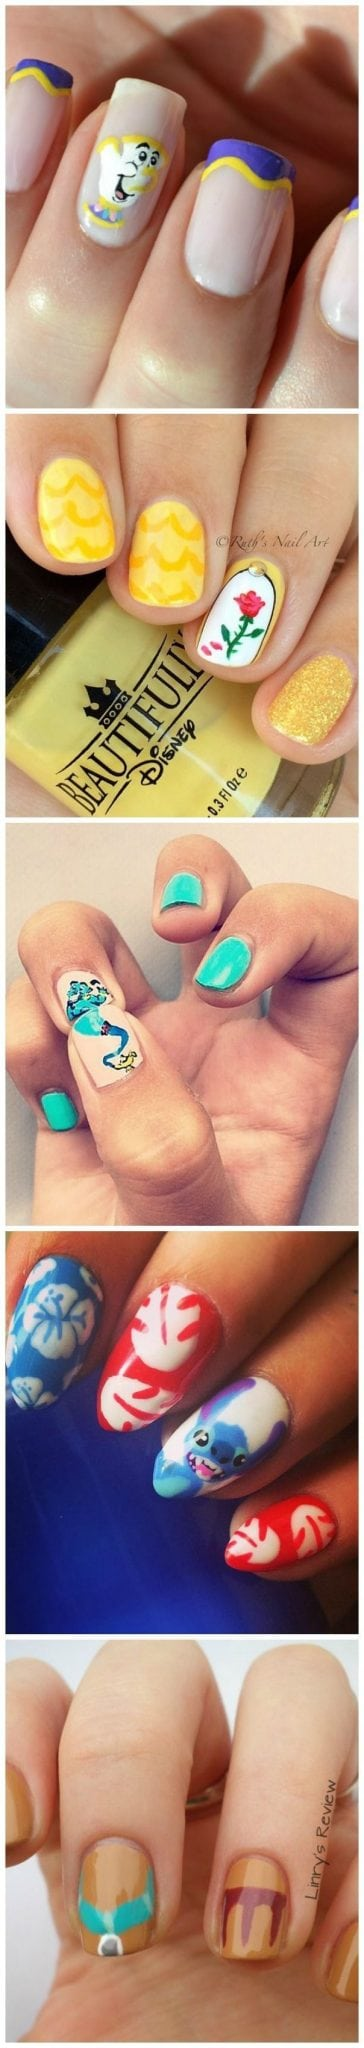 Disney nails – Disney inspired manicures